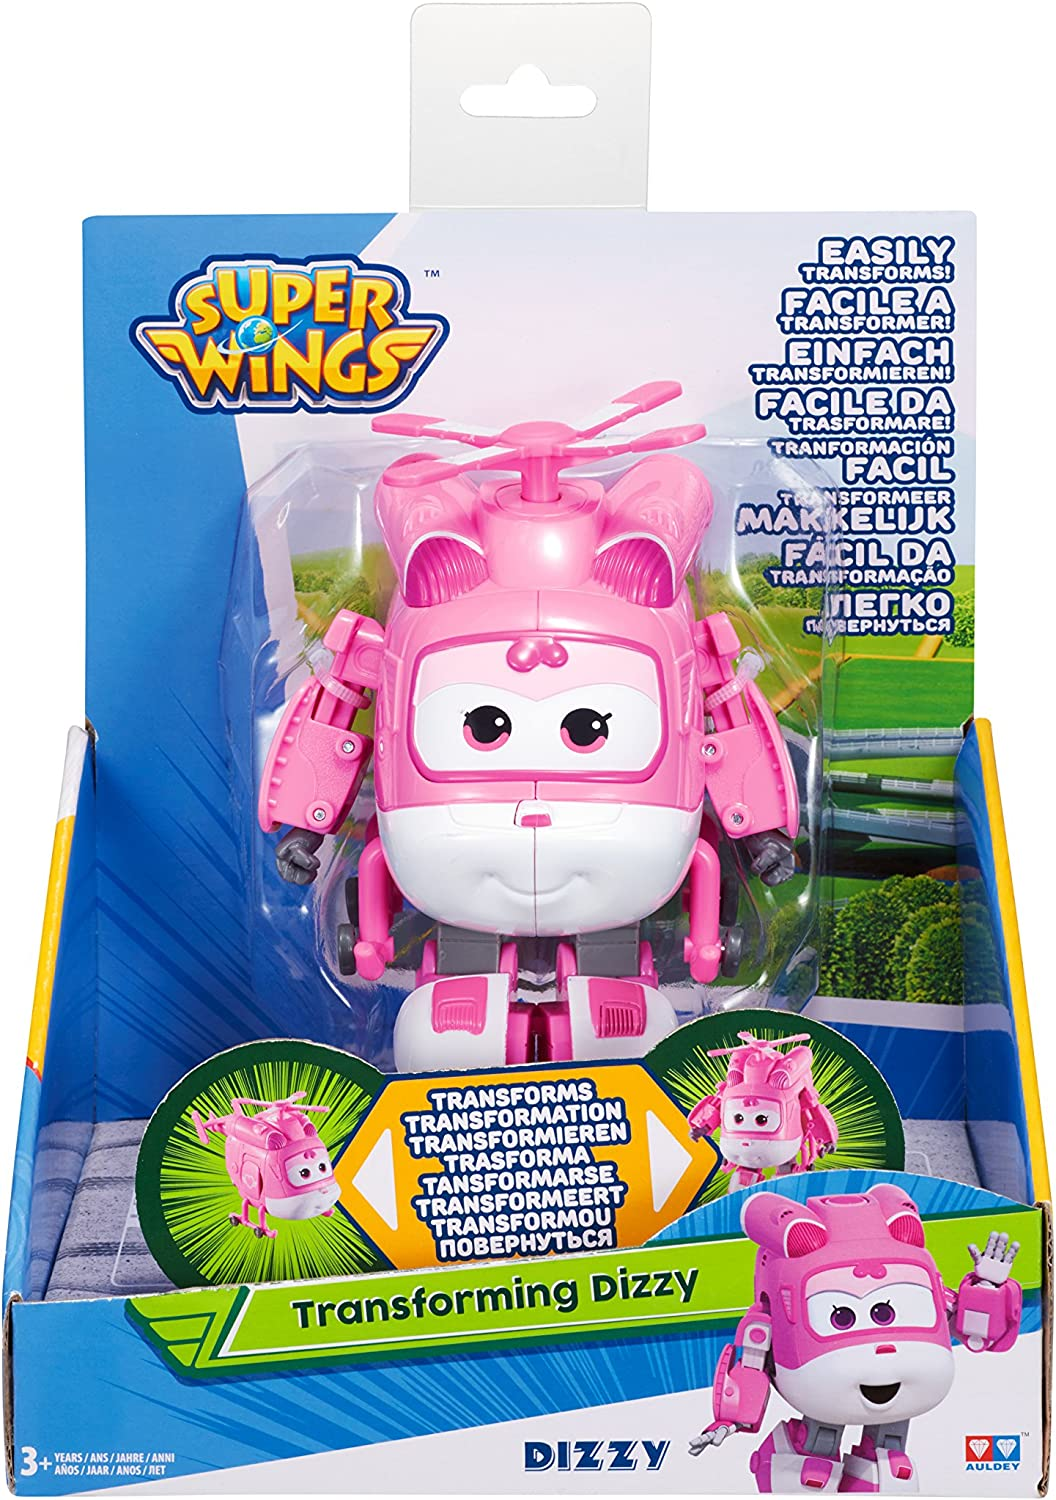 Dizzy Super Wings Medium Transform Figur 12 cm Flugzeug Transform a Bot